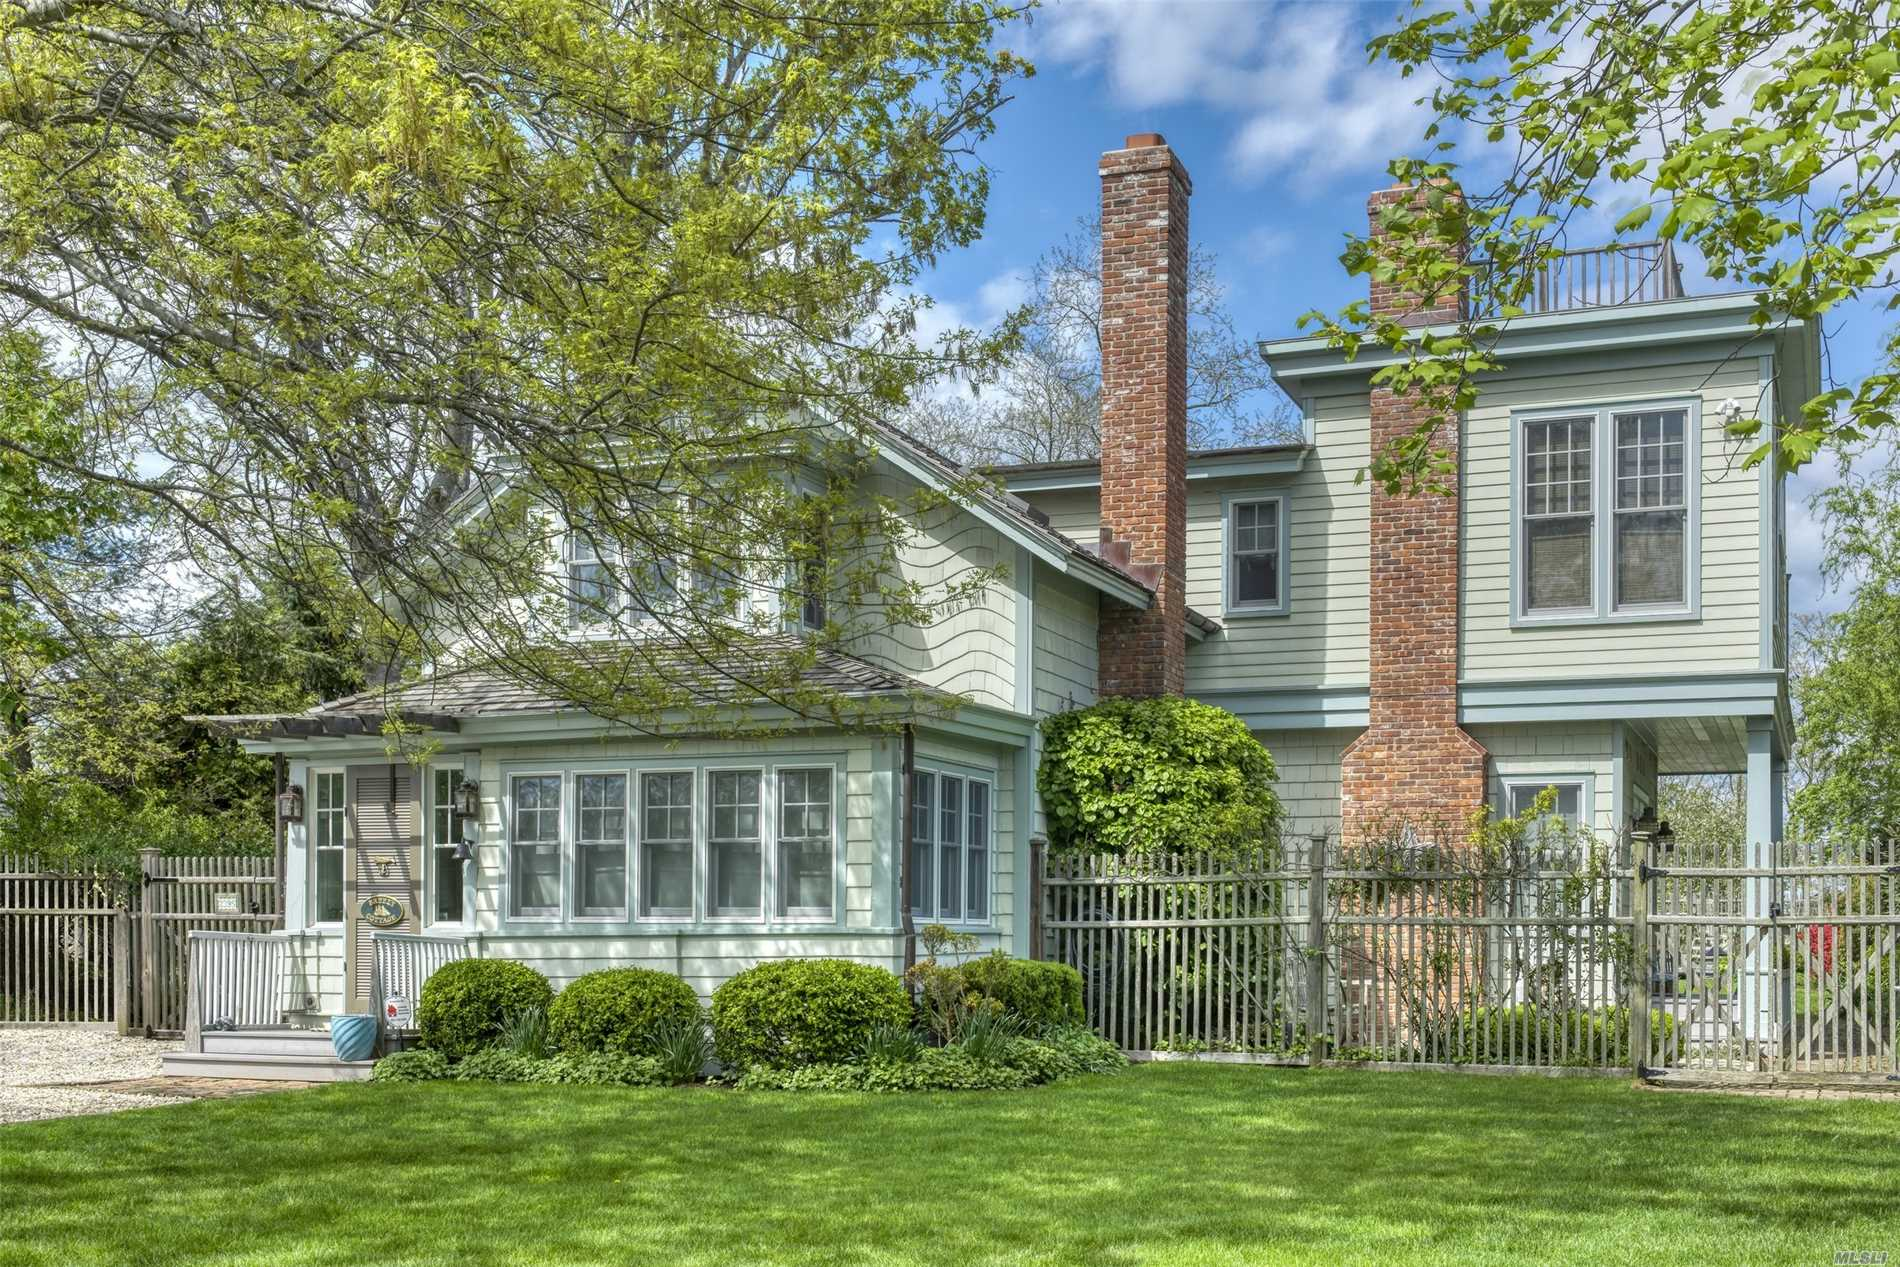 Exquisitely restored and renovated 19th C home, located on coveted King St. in Orient Village with open field views. Main house has gourmet kitchen, 2 fireplaces, original hardwood floors, sunroom, CAC, upper balcony. Antique converted, restored barn guest house has 2 bedrooms & large common space. Gunite heated swimming pool, separate garage/studio, large deck with pergola, outdoor shower, potting station & so much more.